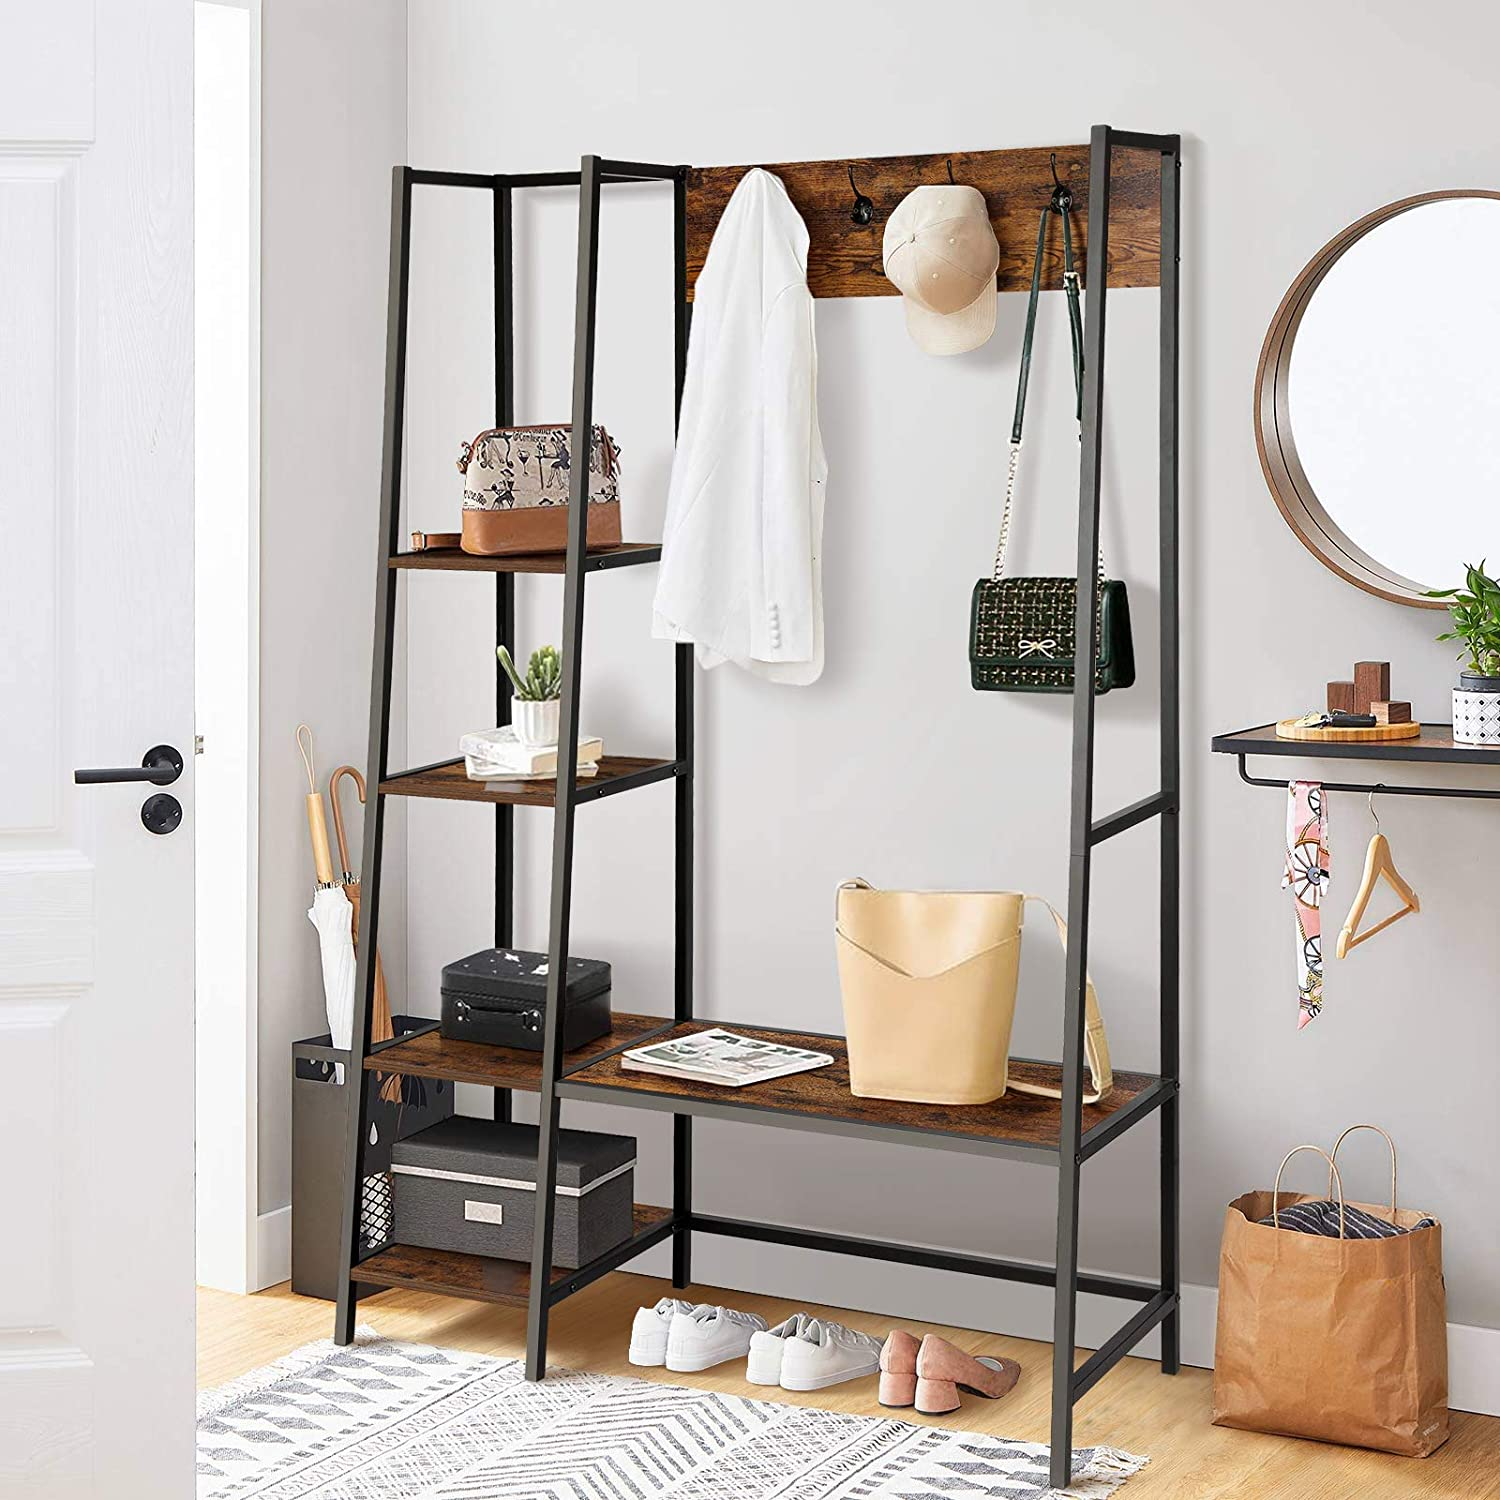 BackH Entryway Hall Tree with Bench and Hooks, Entryway Coat Rack 4 Tier Shelves, Shoes Bench, Rustic Style, Industrial Storage Shelves, Wood Accent Furniture, (Rustic Brown)